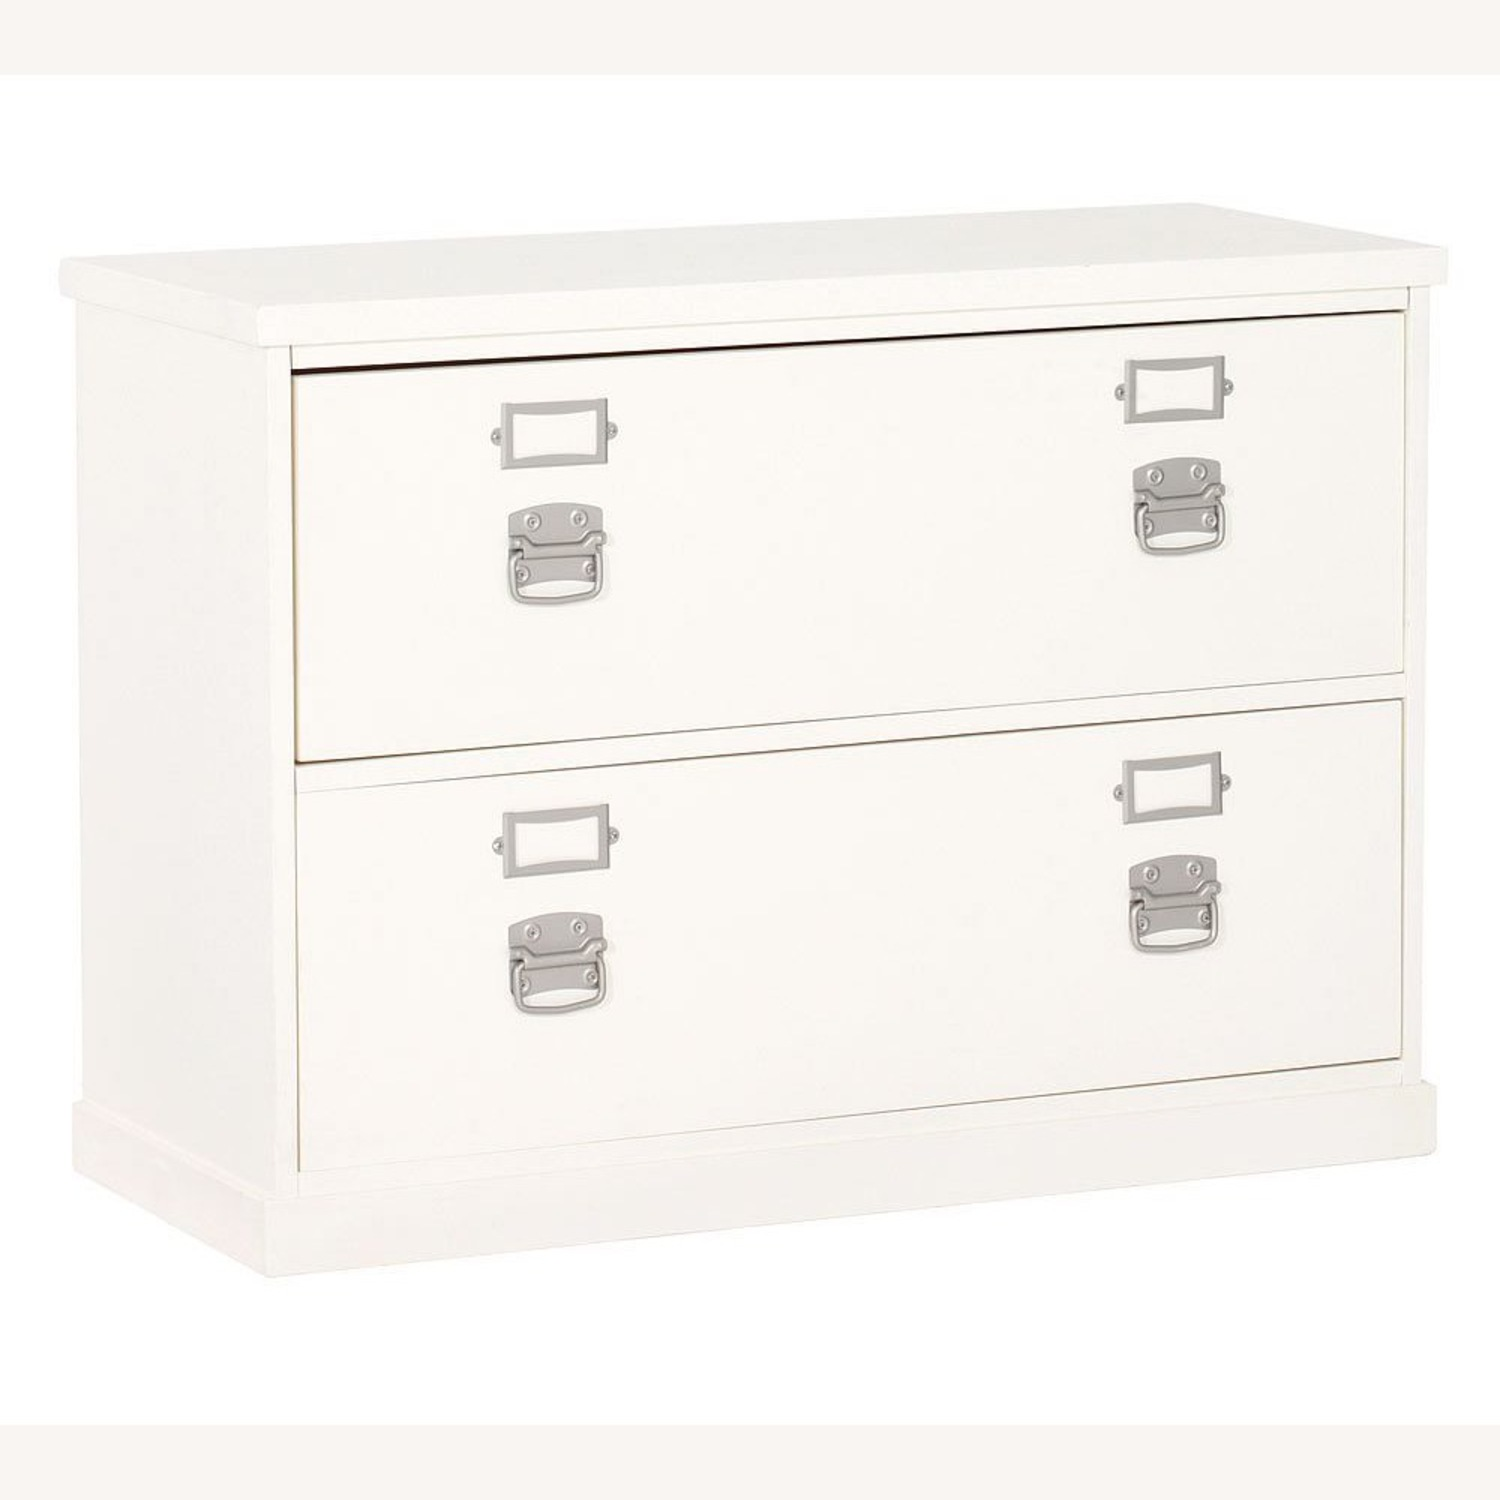 Pottery Barn Bedford Lateral File Cabinet - image-1